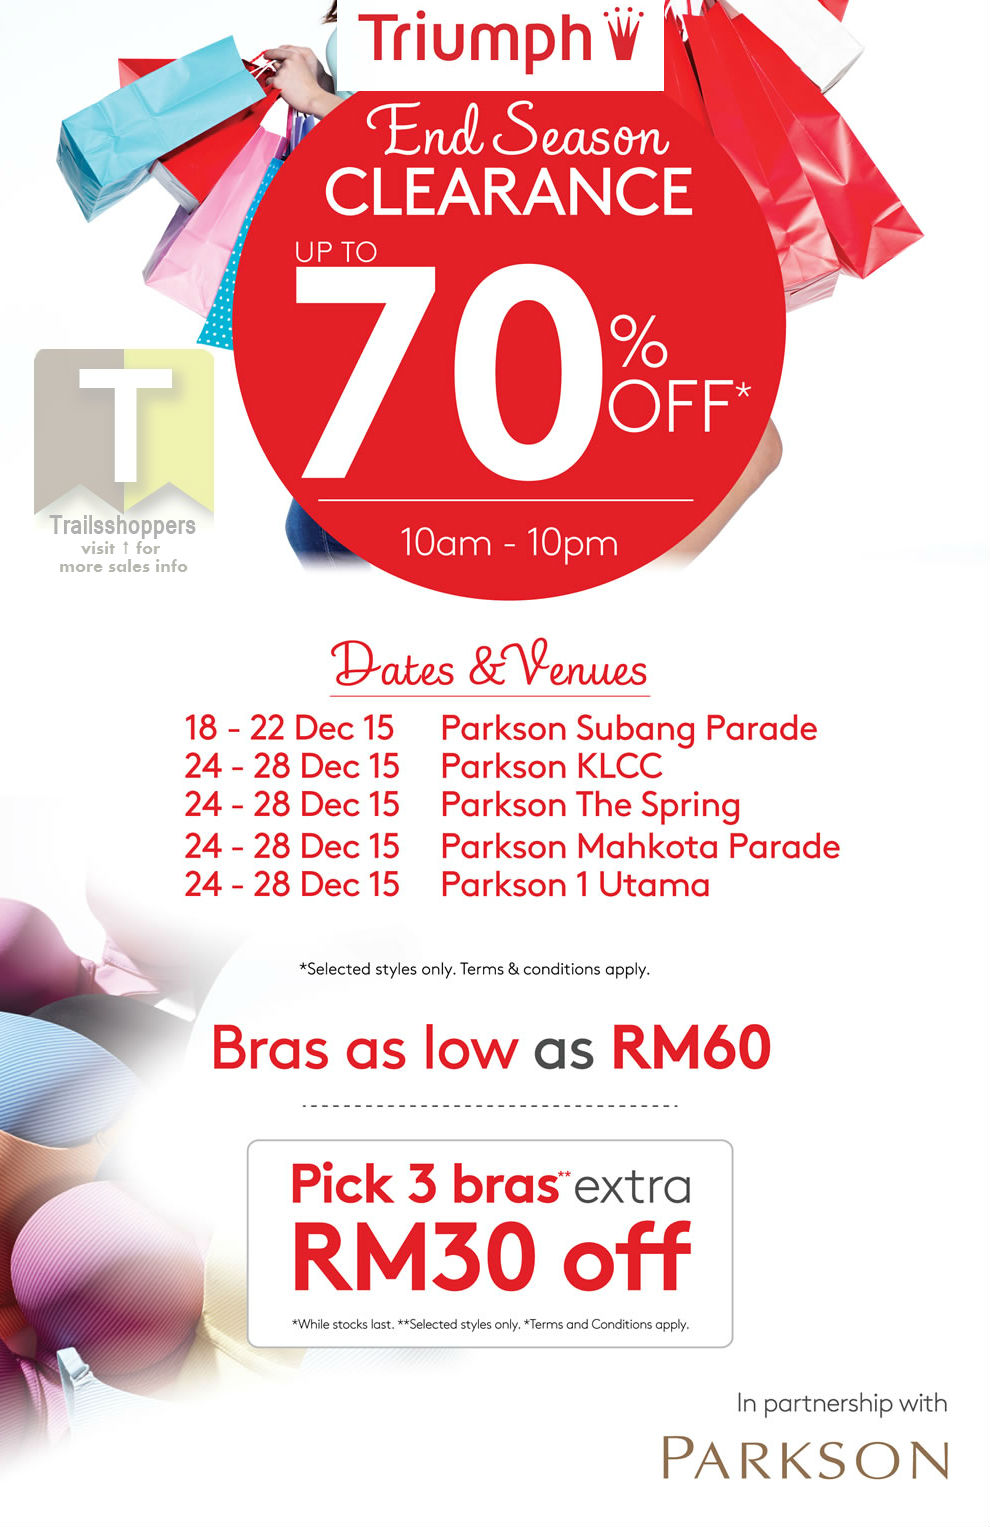 Parkson Triumph Year End Clearance